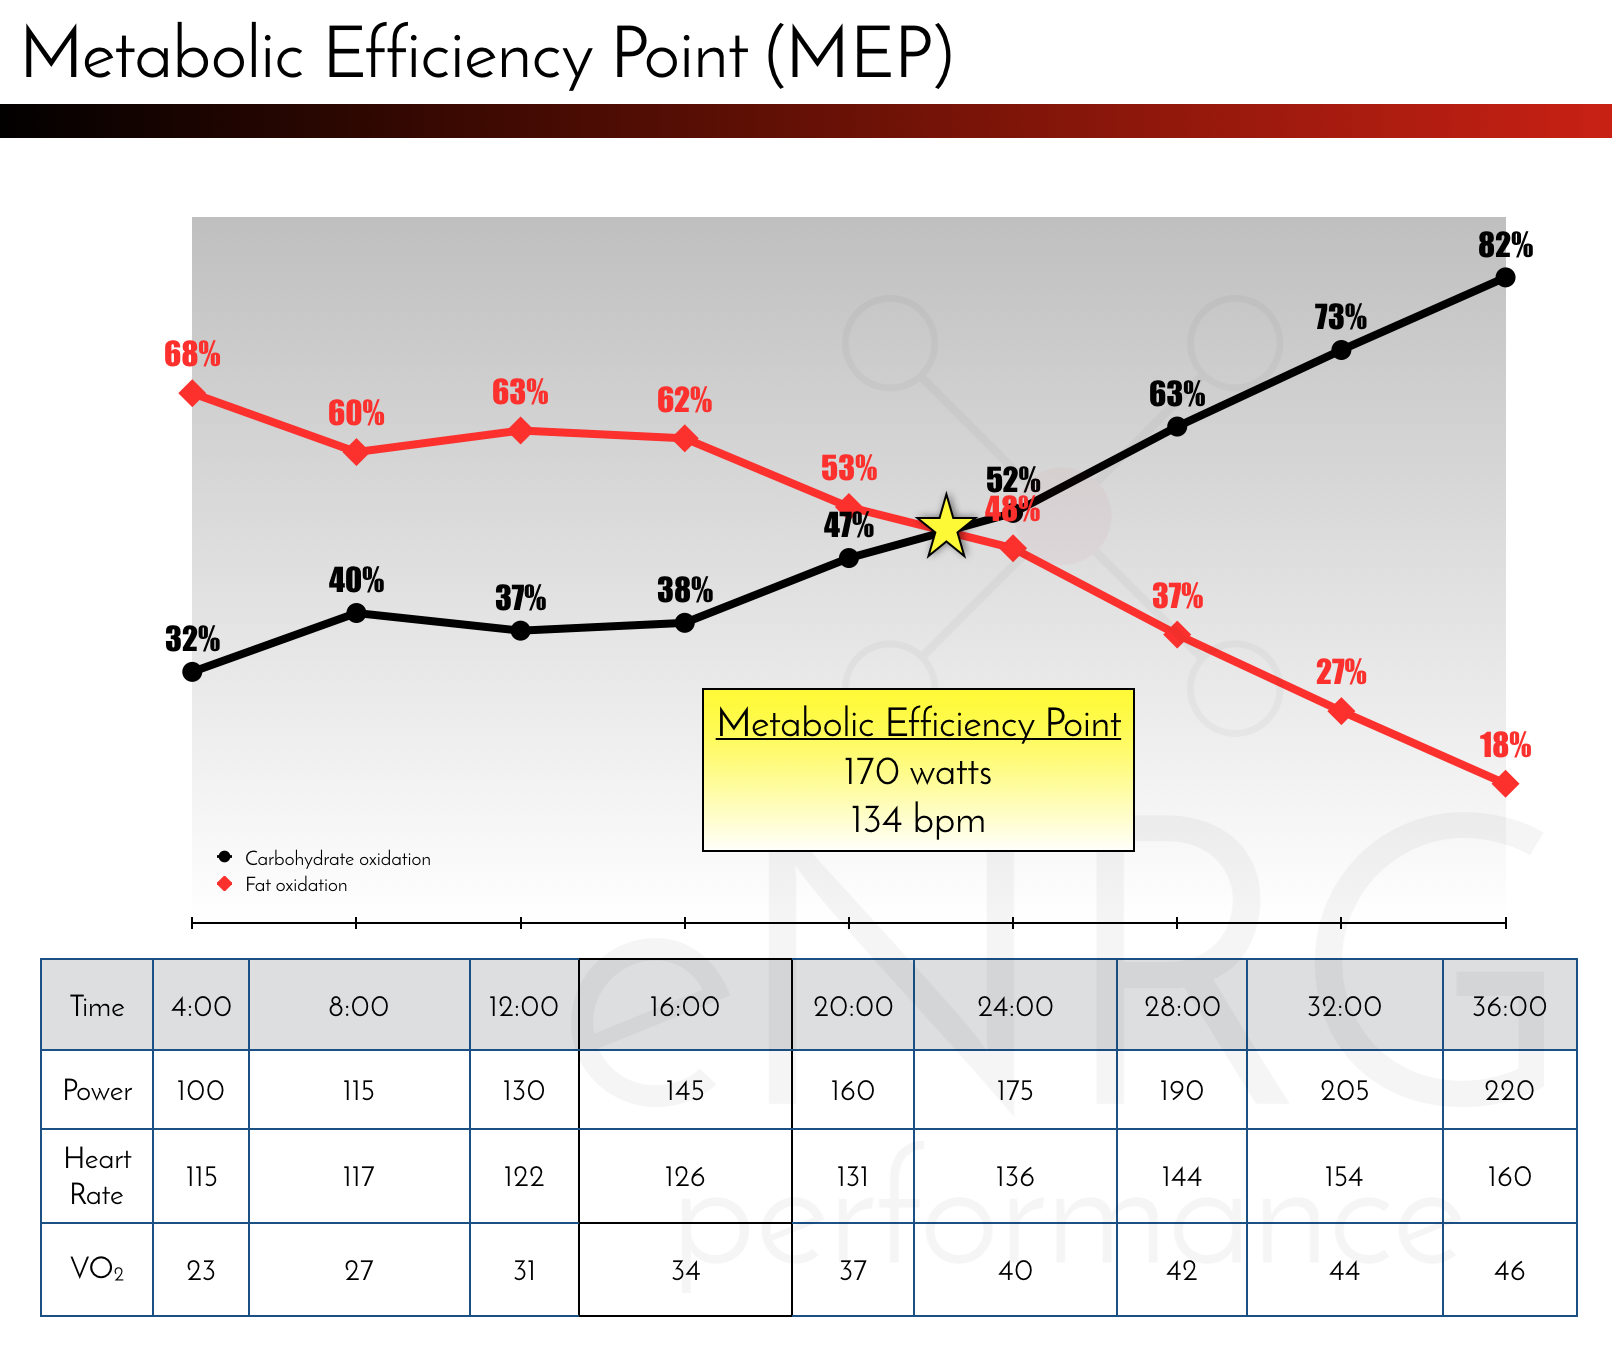 This is the Metabolic Efficiency Point graph that will show if and where your MEP happens. It is unique to each person and your daily nutrition will account for roughly 75% of your body's ability to use fat and carbohydrate. Your MEP can change in as little as a few weeks when your nutrition plan is correct.